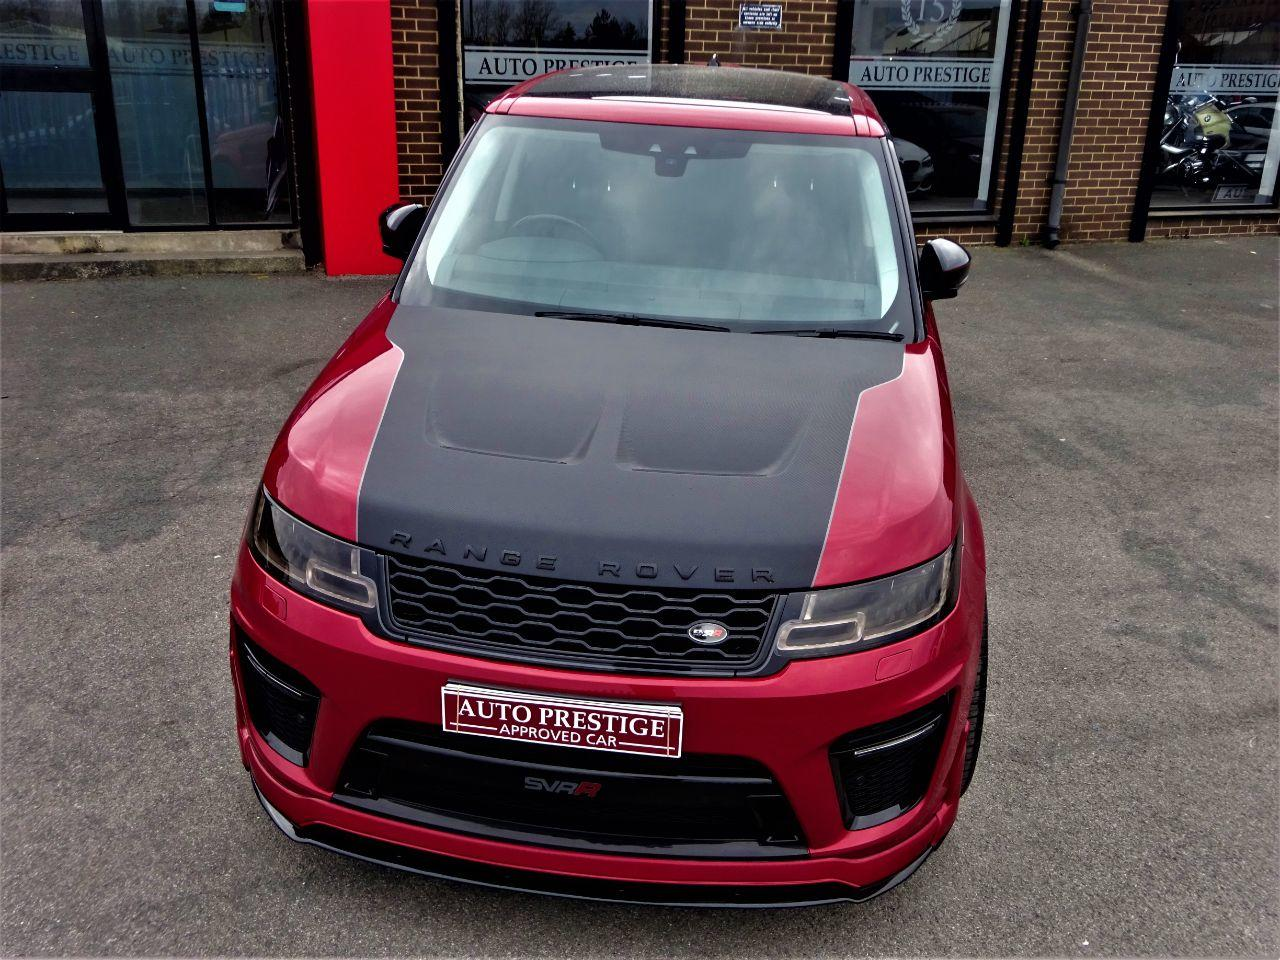 Land Rover Range Rover Sport 3.0 SDV6 HSE SVR STYLING PACK BLACK DIAMOND EDITION LATEST SHAPE LR WARRANTY PAN ROOF DVD TV Estate Diesel Red at Autoprestige Bradford